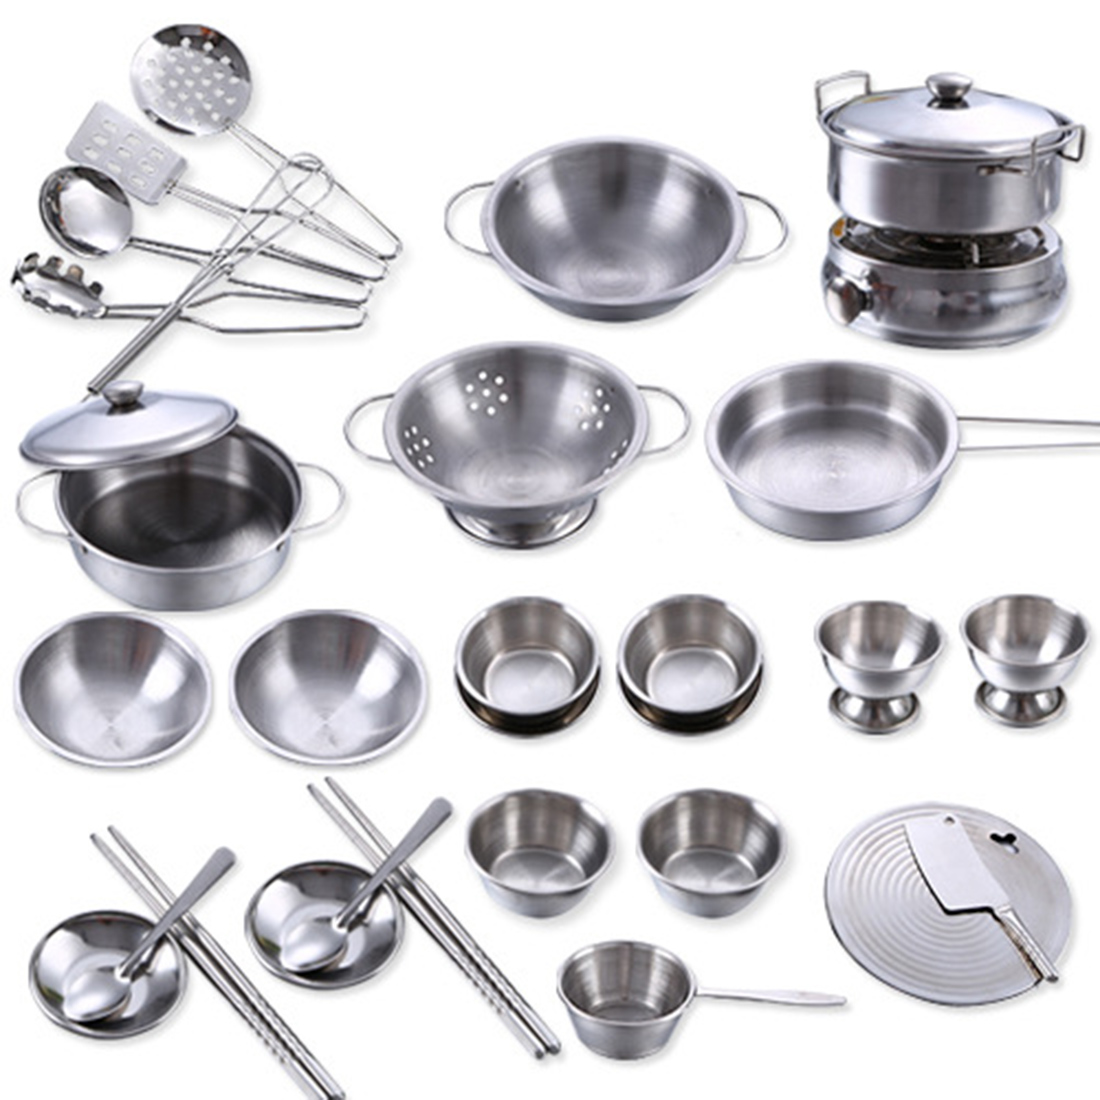 32pcs Kitchen Toys Diy Safety Stainless Steel Kitchen Playset Cooking Cookware Pretend Play Toys Forii Boys Infant Birthday Gift Pretend Play